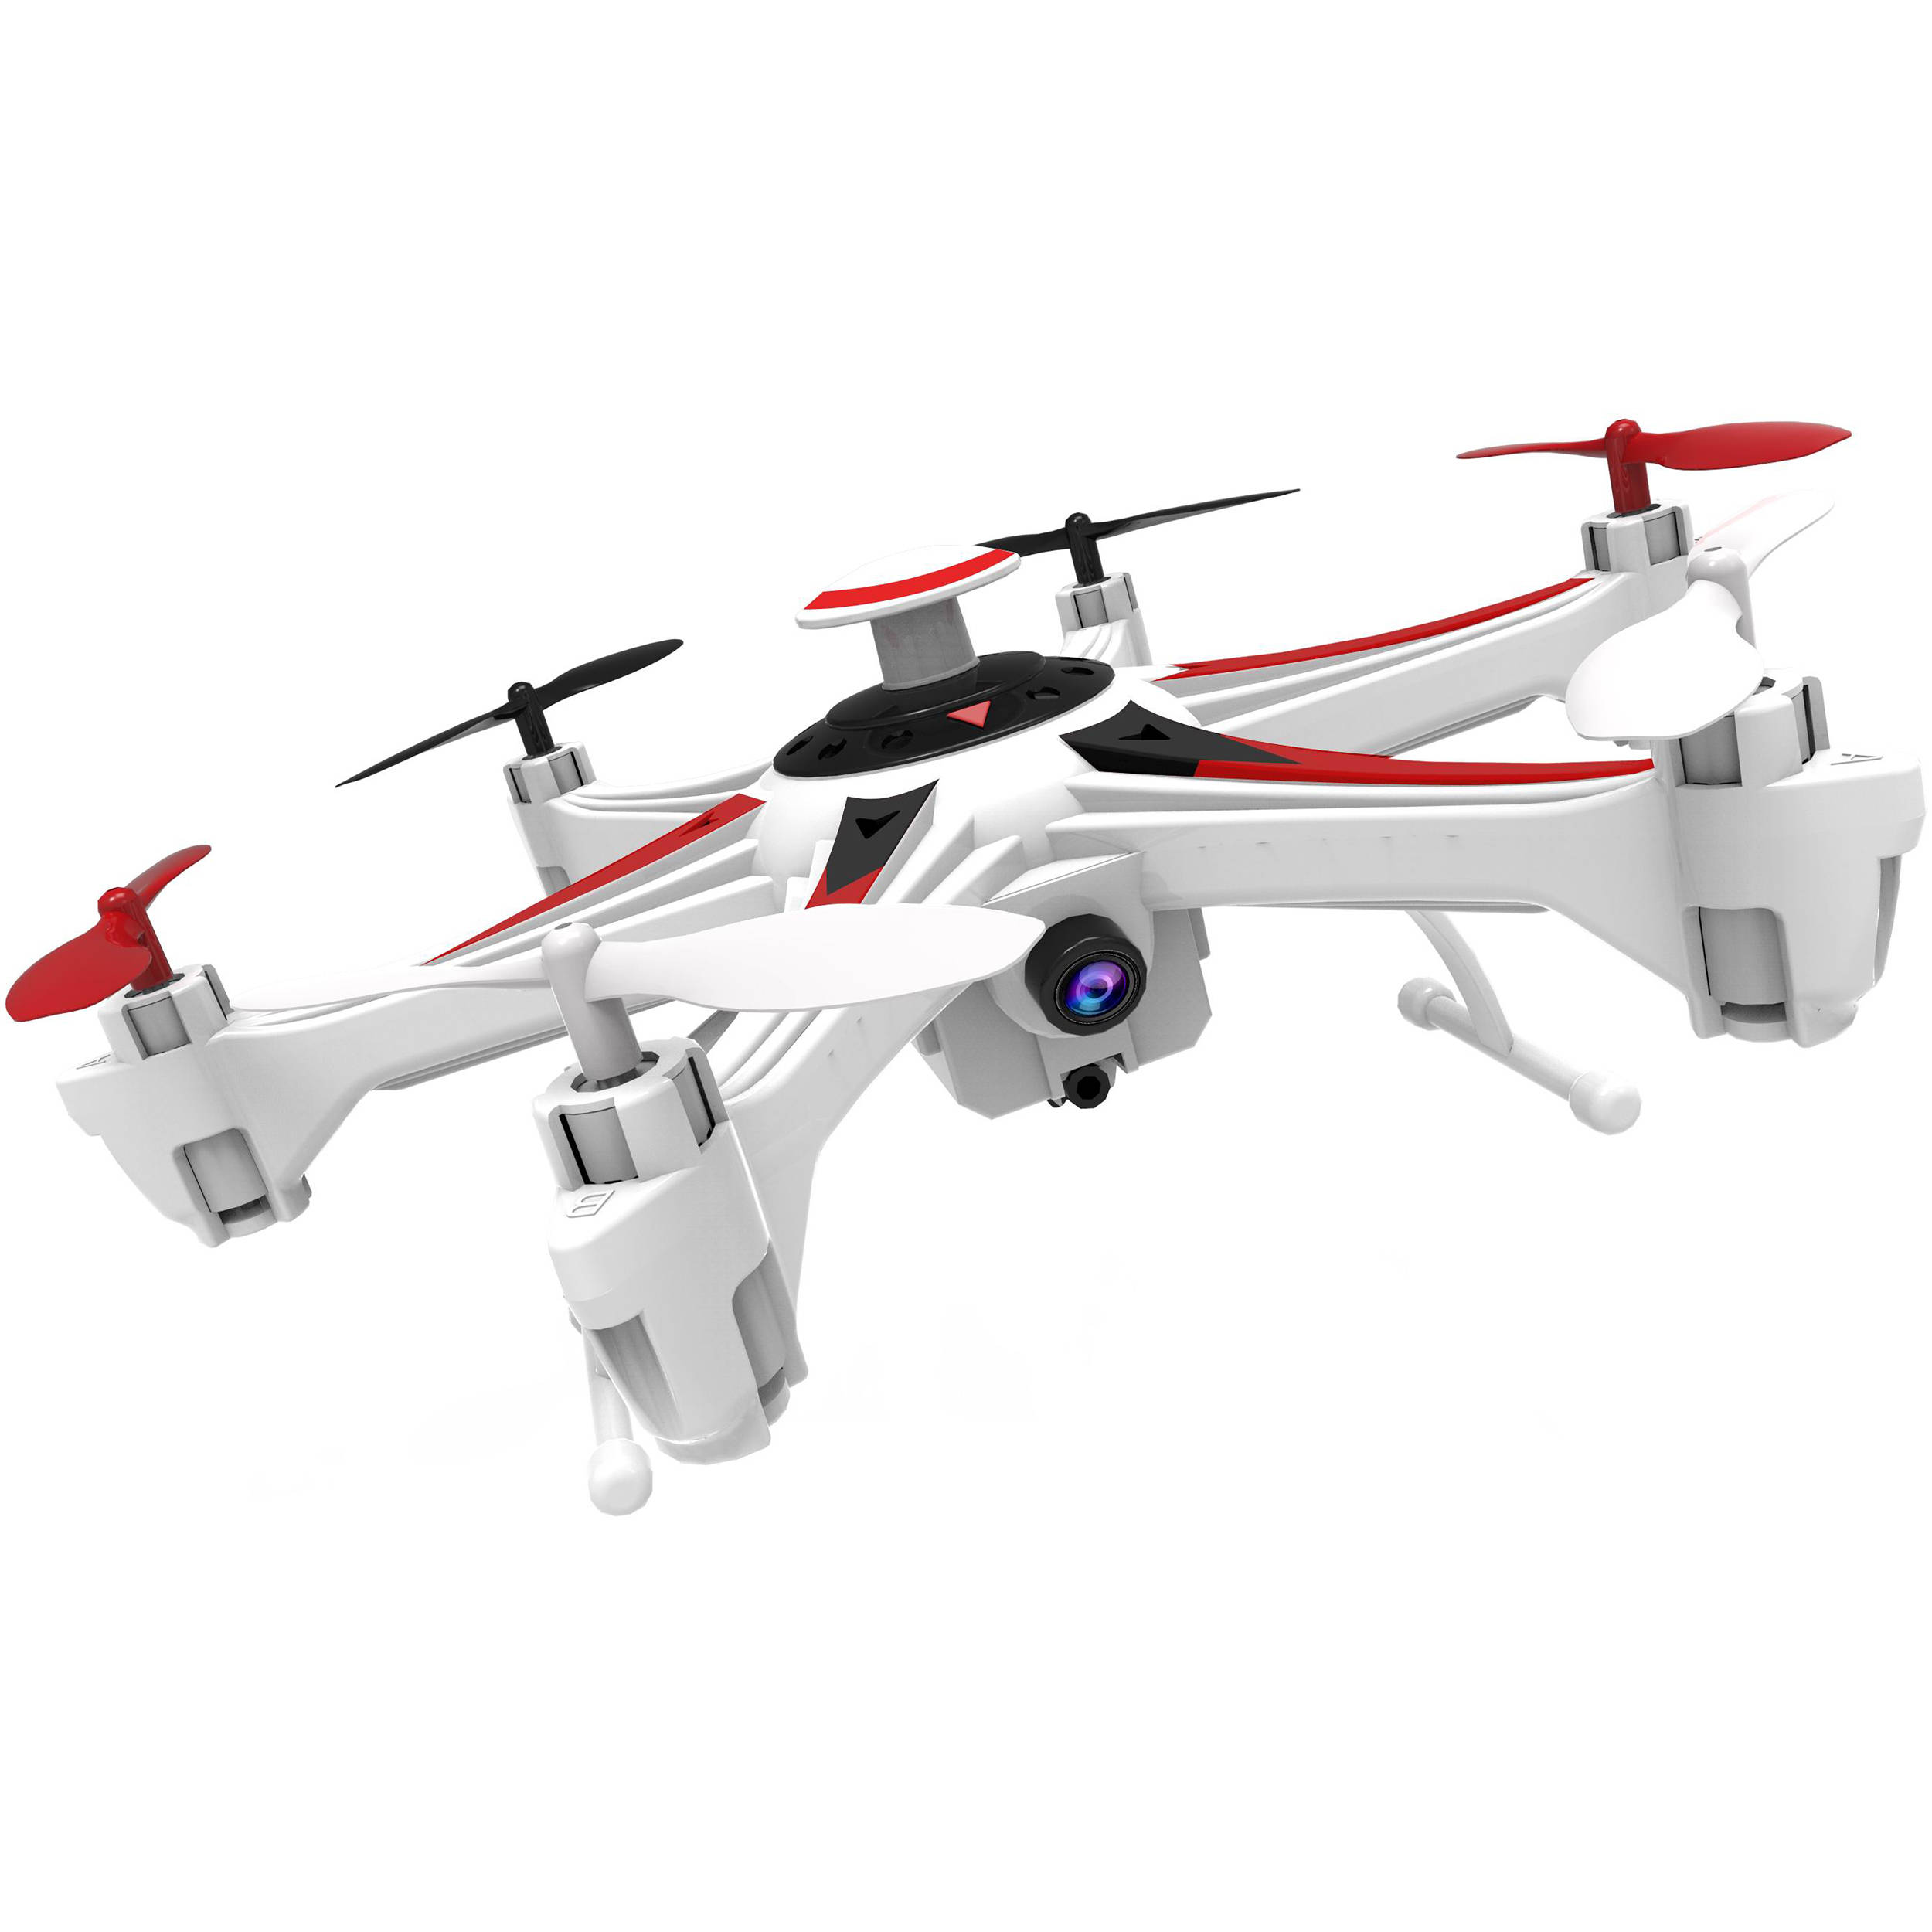 smartphone controlled drone with camera with Alsvwdtl on 258003 Gopro Developing New Line Of Affordable Consumer Drones also Hirobot Smartphone App Controlled Rc Racing Car Robot moreover Latest Drone Dji Spark Mini Drone in addition Swift Stream Z9 Camera Drone besides 143 Dro hermal Micro Uav Thermal Imaging Camera.